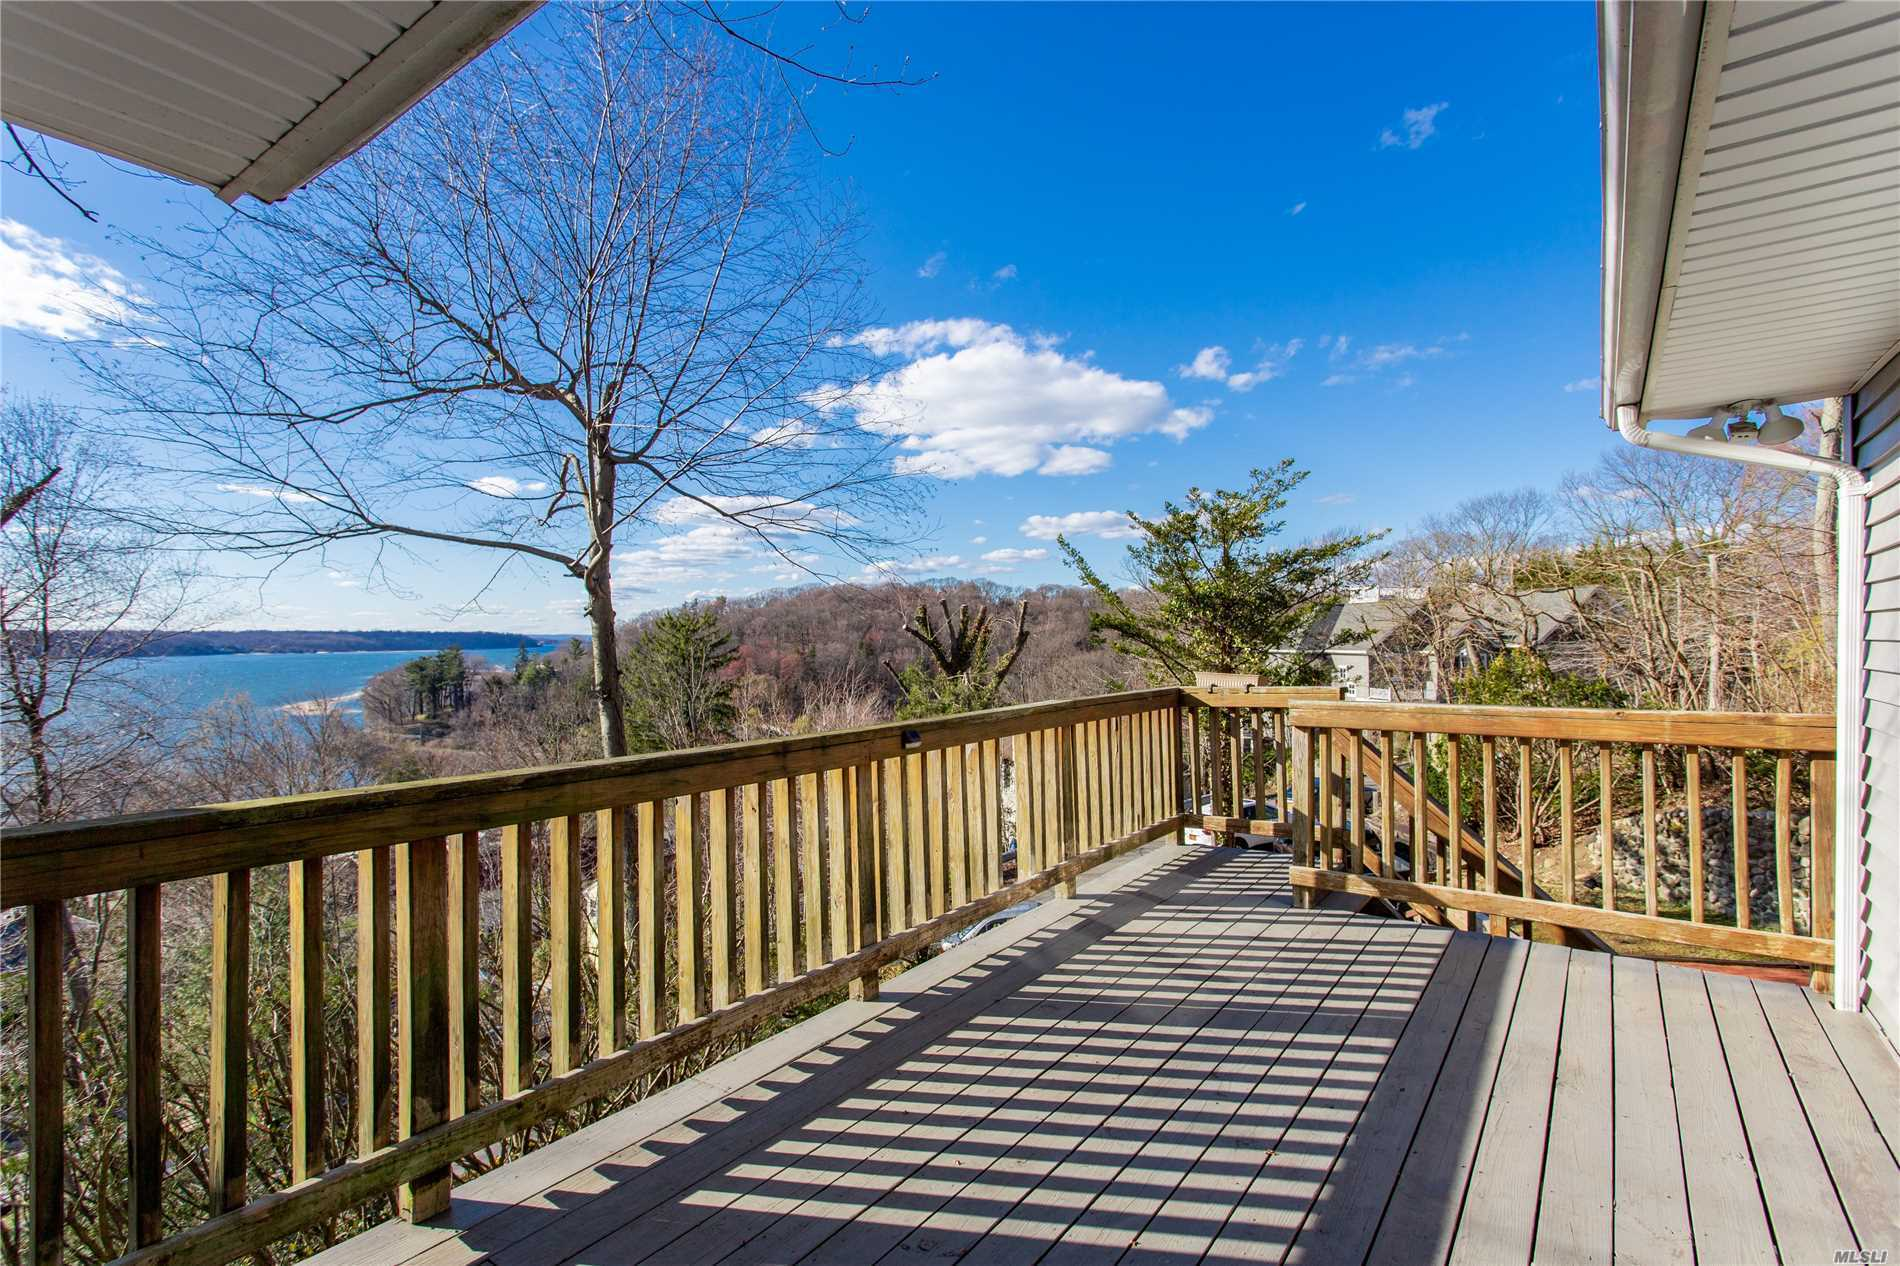 Seaside authentic mid-century cottage enjoys YEAR ROUND WESTERN WATERVIEWS, nightly sunsets, cathedral ceiling in LR w fireplace, hardwood floors and close to town, beach, railroad. Eagle Dock Beach and Cold Spring Harbor schools nearby.